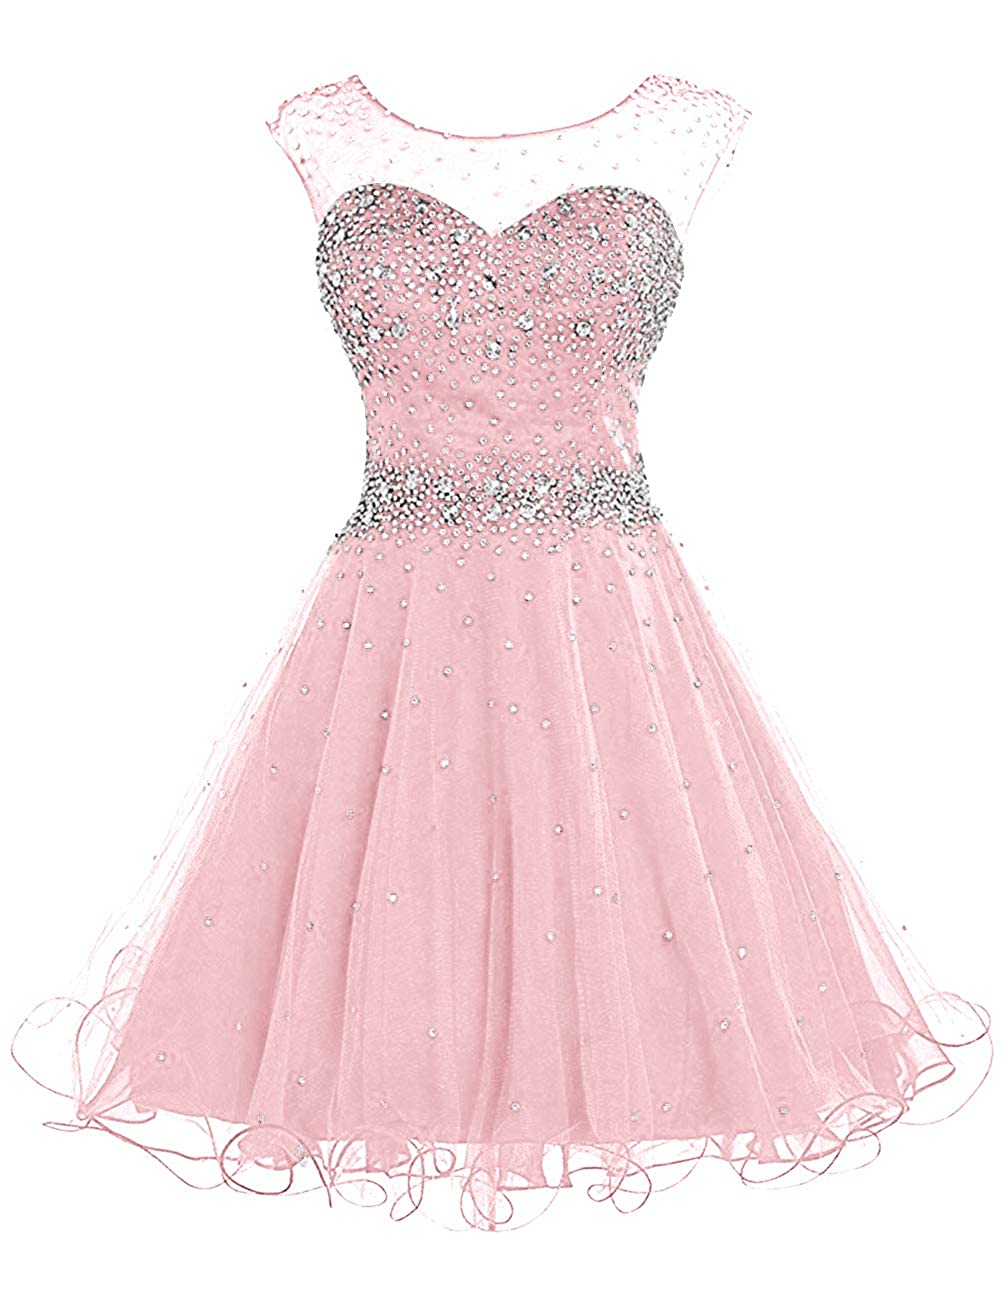 Light Pink H.S.D Homecoming Dresses Prom Party Dresses Short Cocktail Dress Beads Graduation Gown